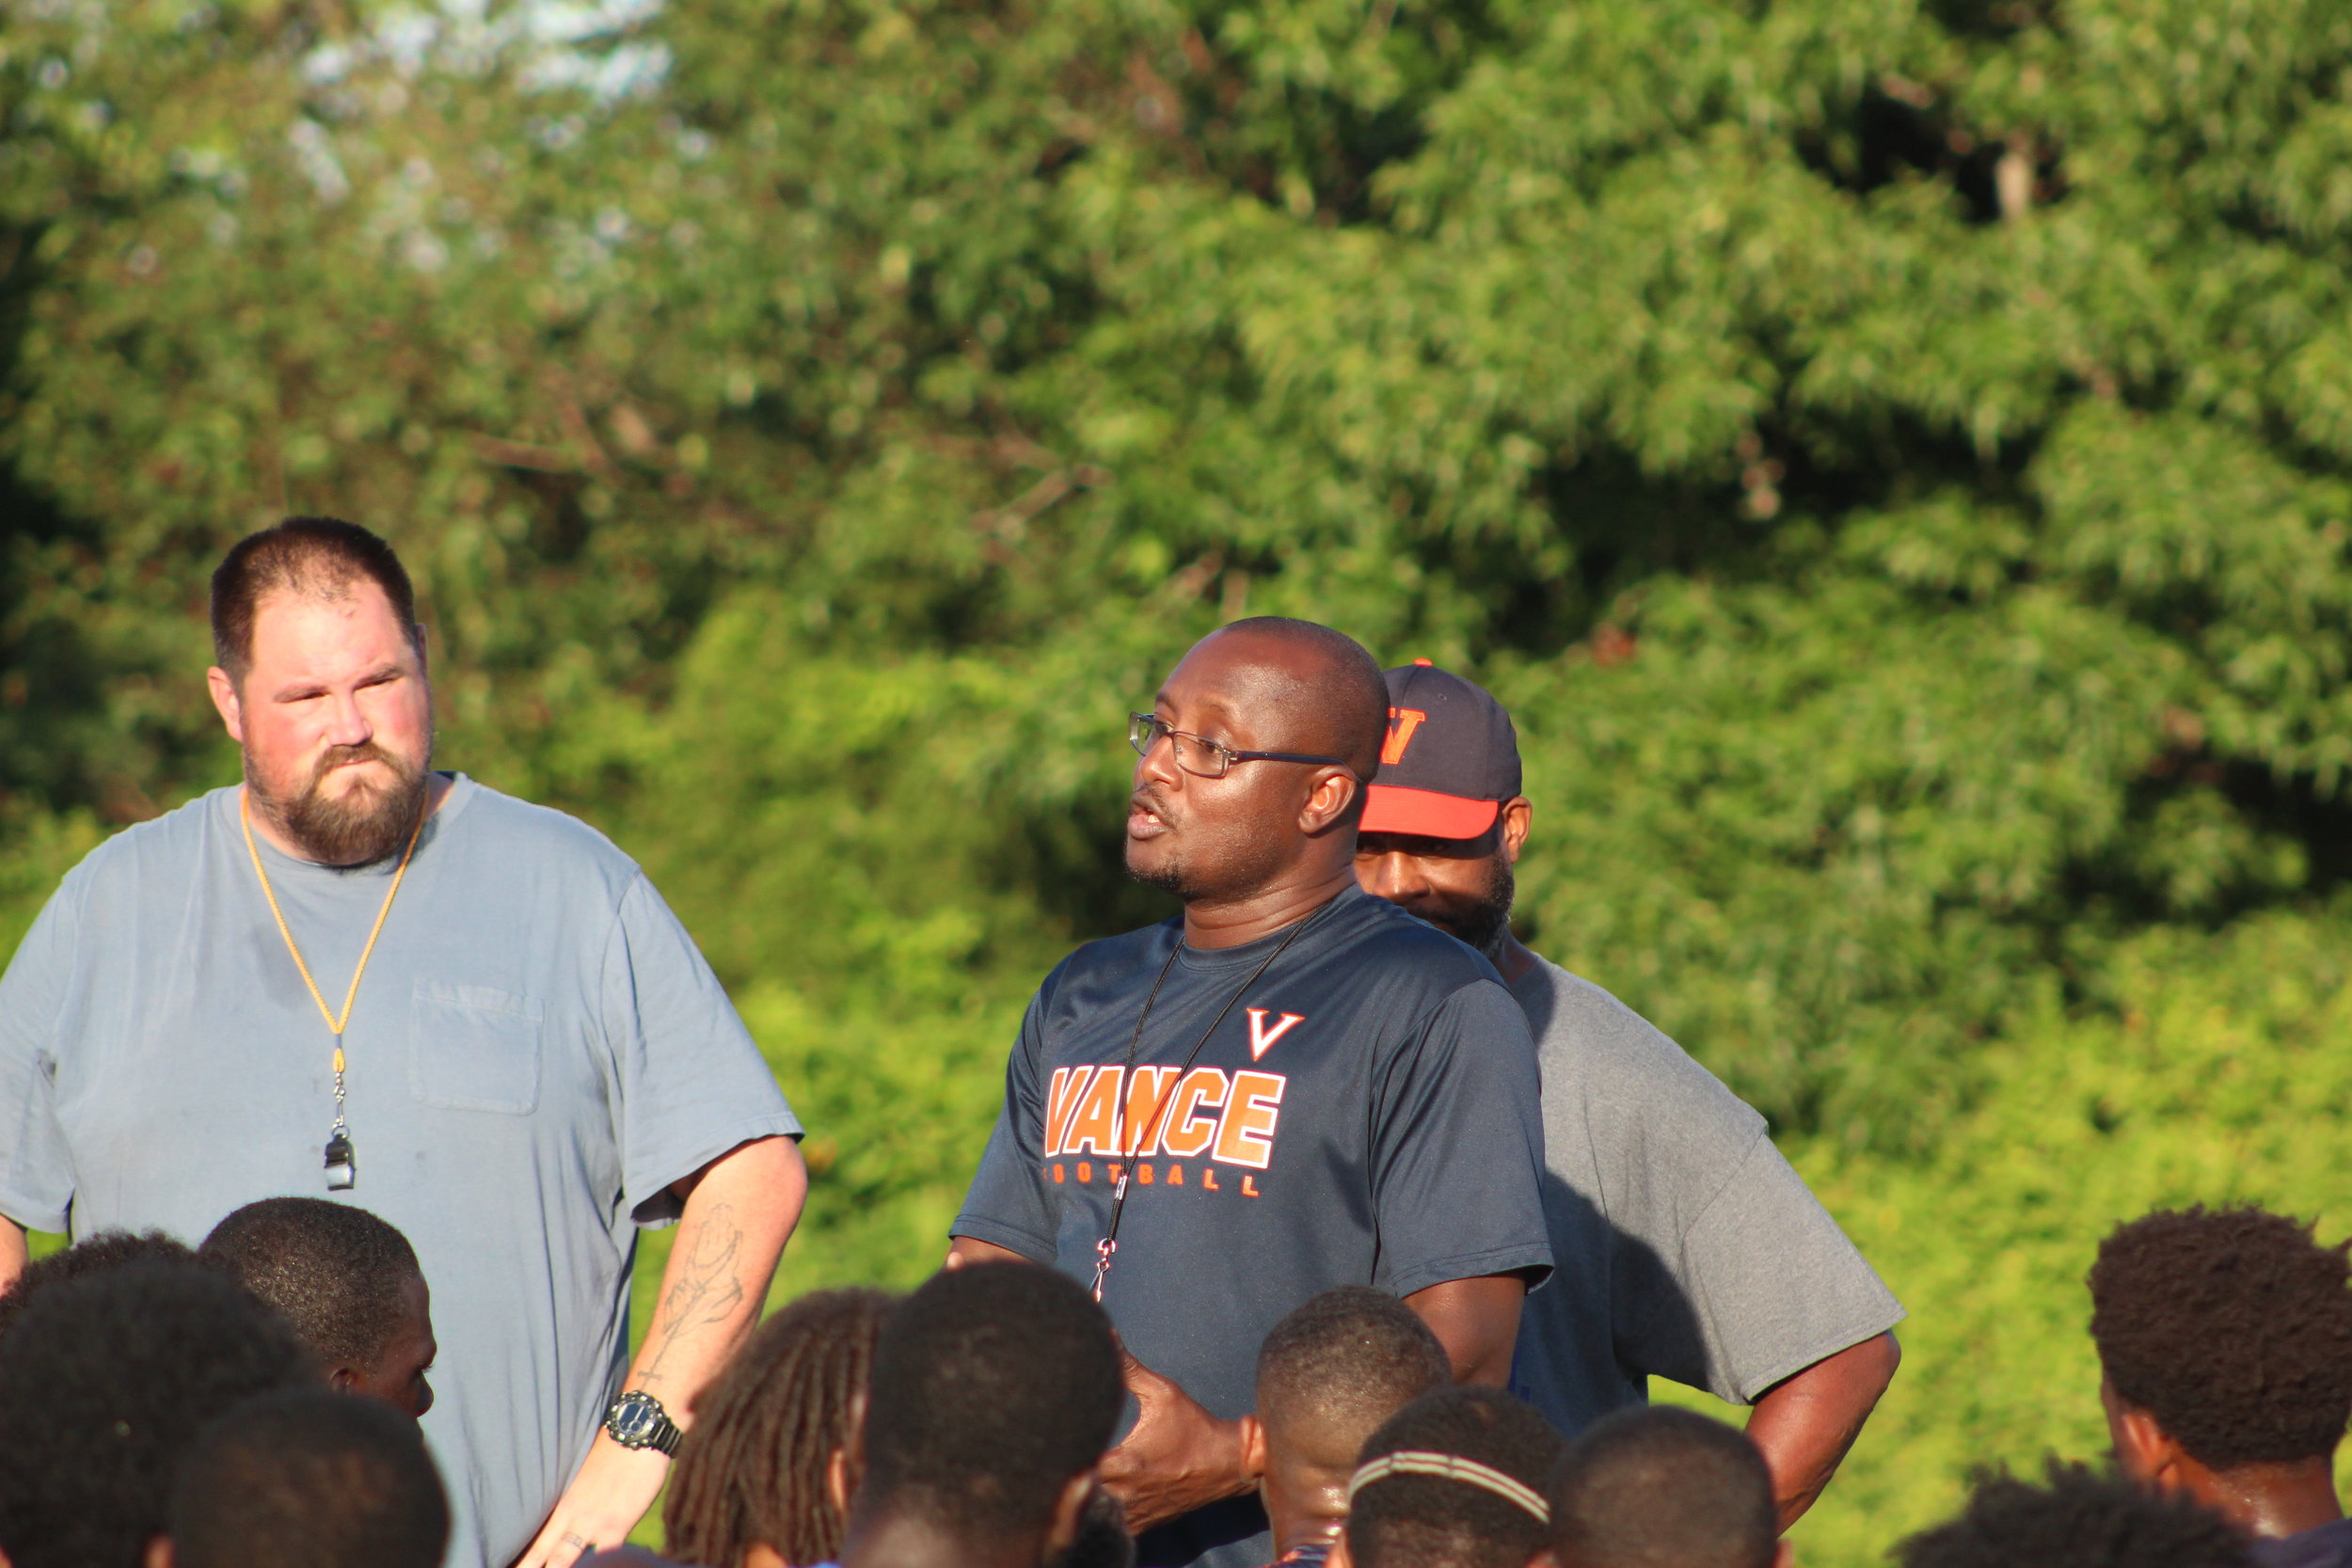 New Vance Head Coach Glenwood Ferebee speaks with his team at the end of practice